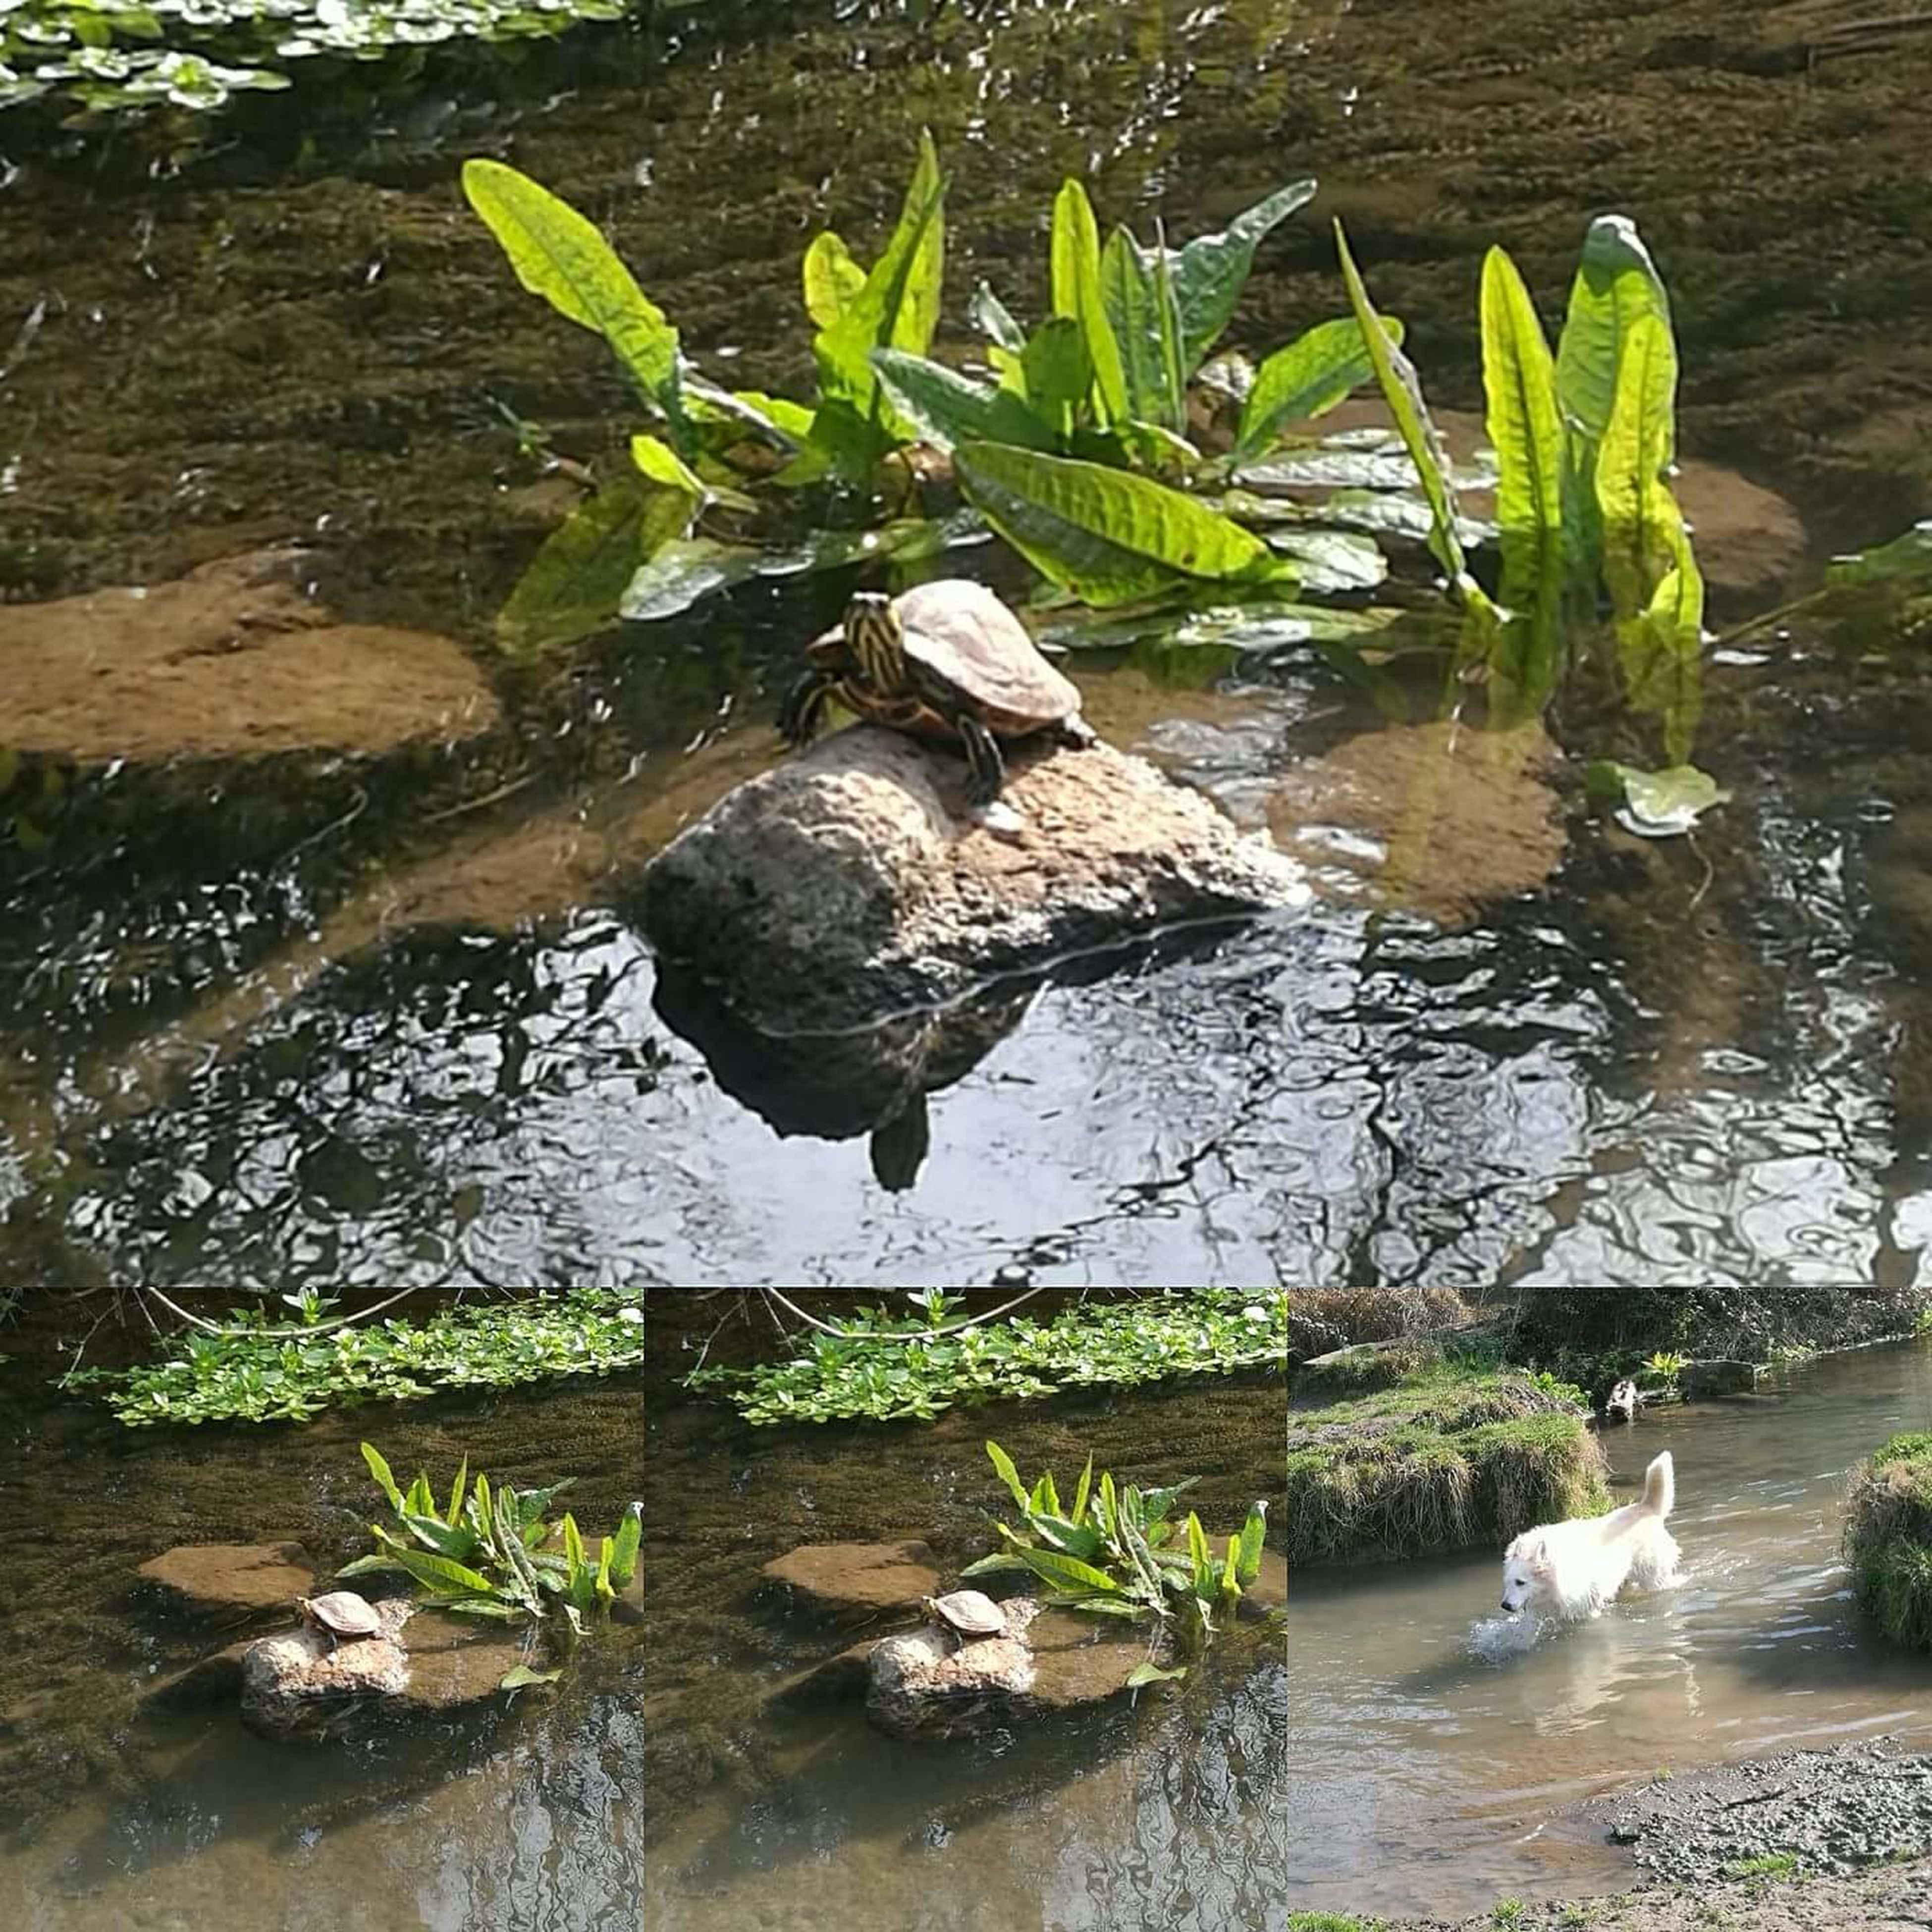 water, rock - object, nature, day, plant, green color, no people, growth, reflection, high angle view, waterfront, outdoors, lake, beauty in nature, leaf, animals in the wild, animal themes